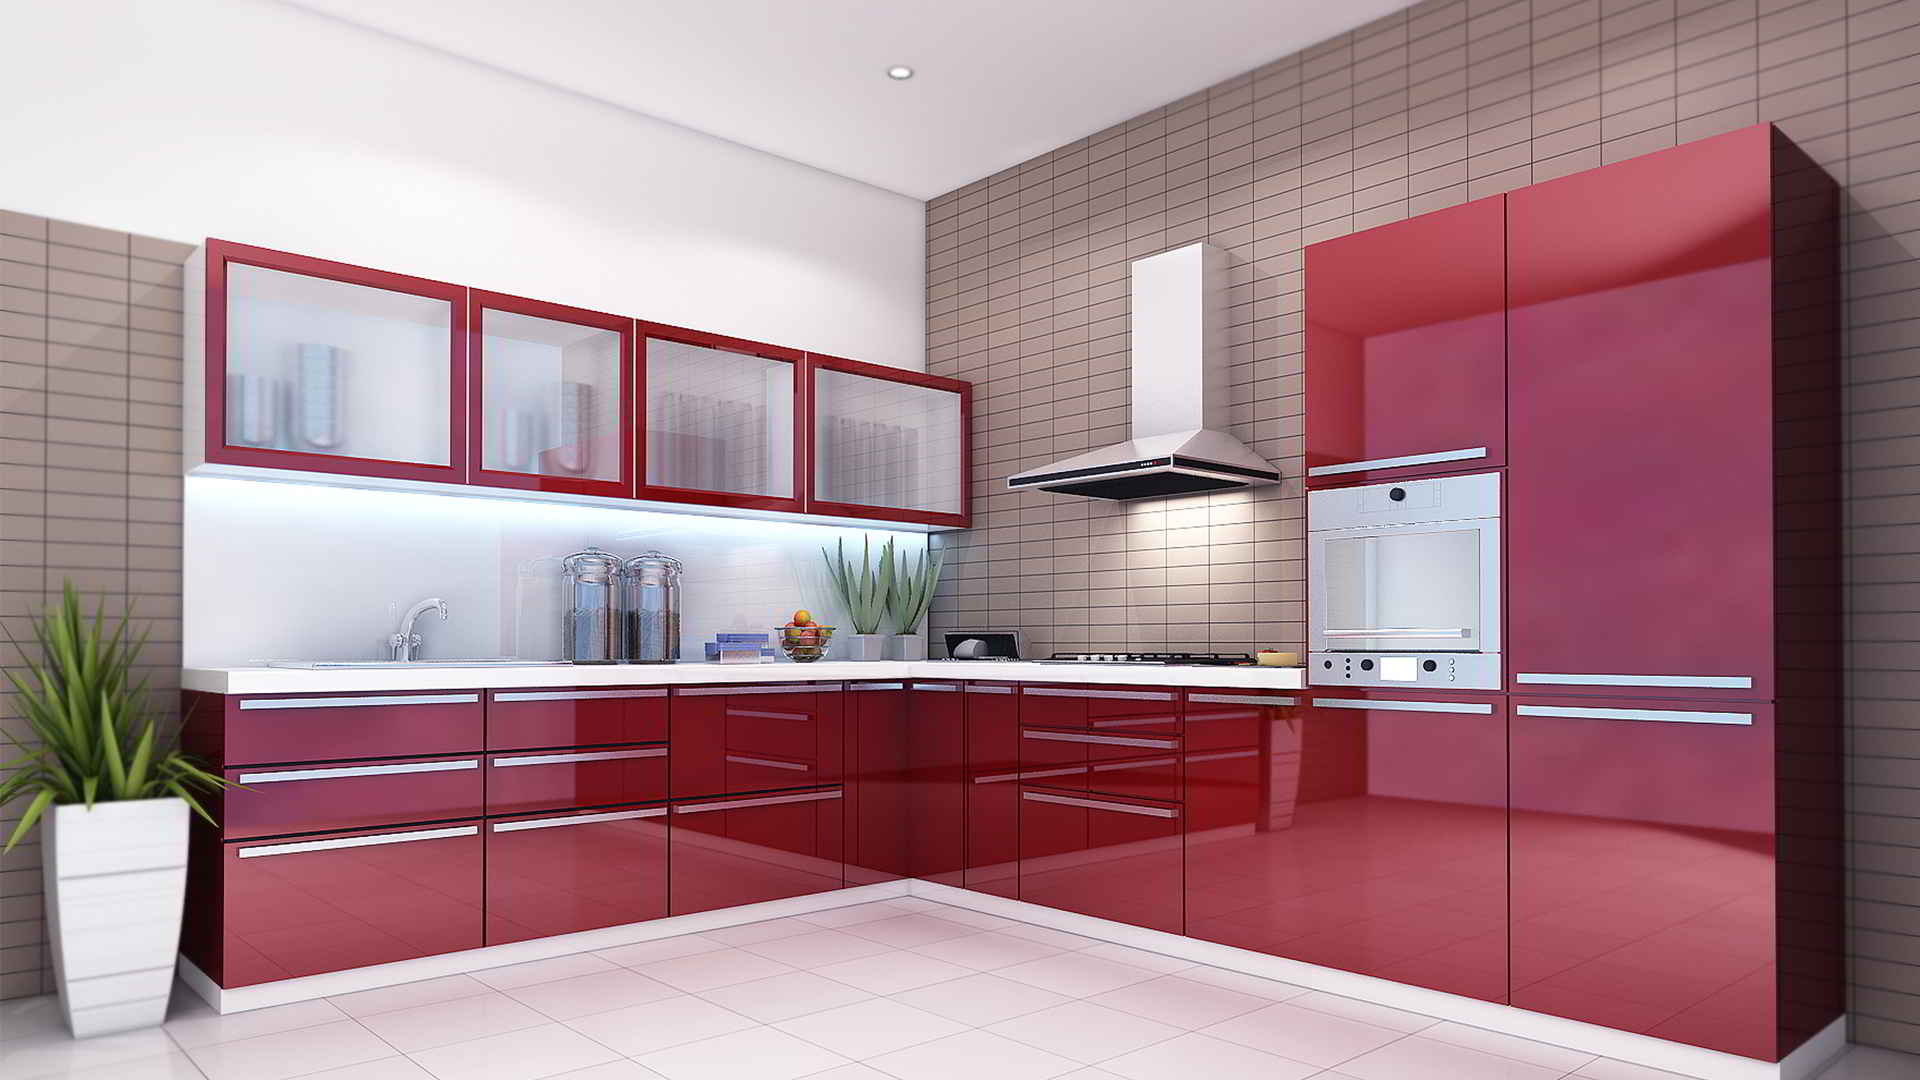 Kitchen Cabinet Manufacturers Modular Kitchen Cabinets Design India Cool Cabinet Ideas Interior photo - 5